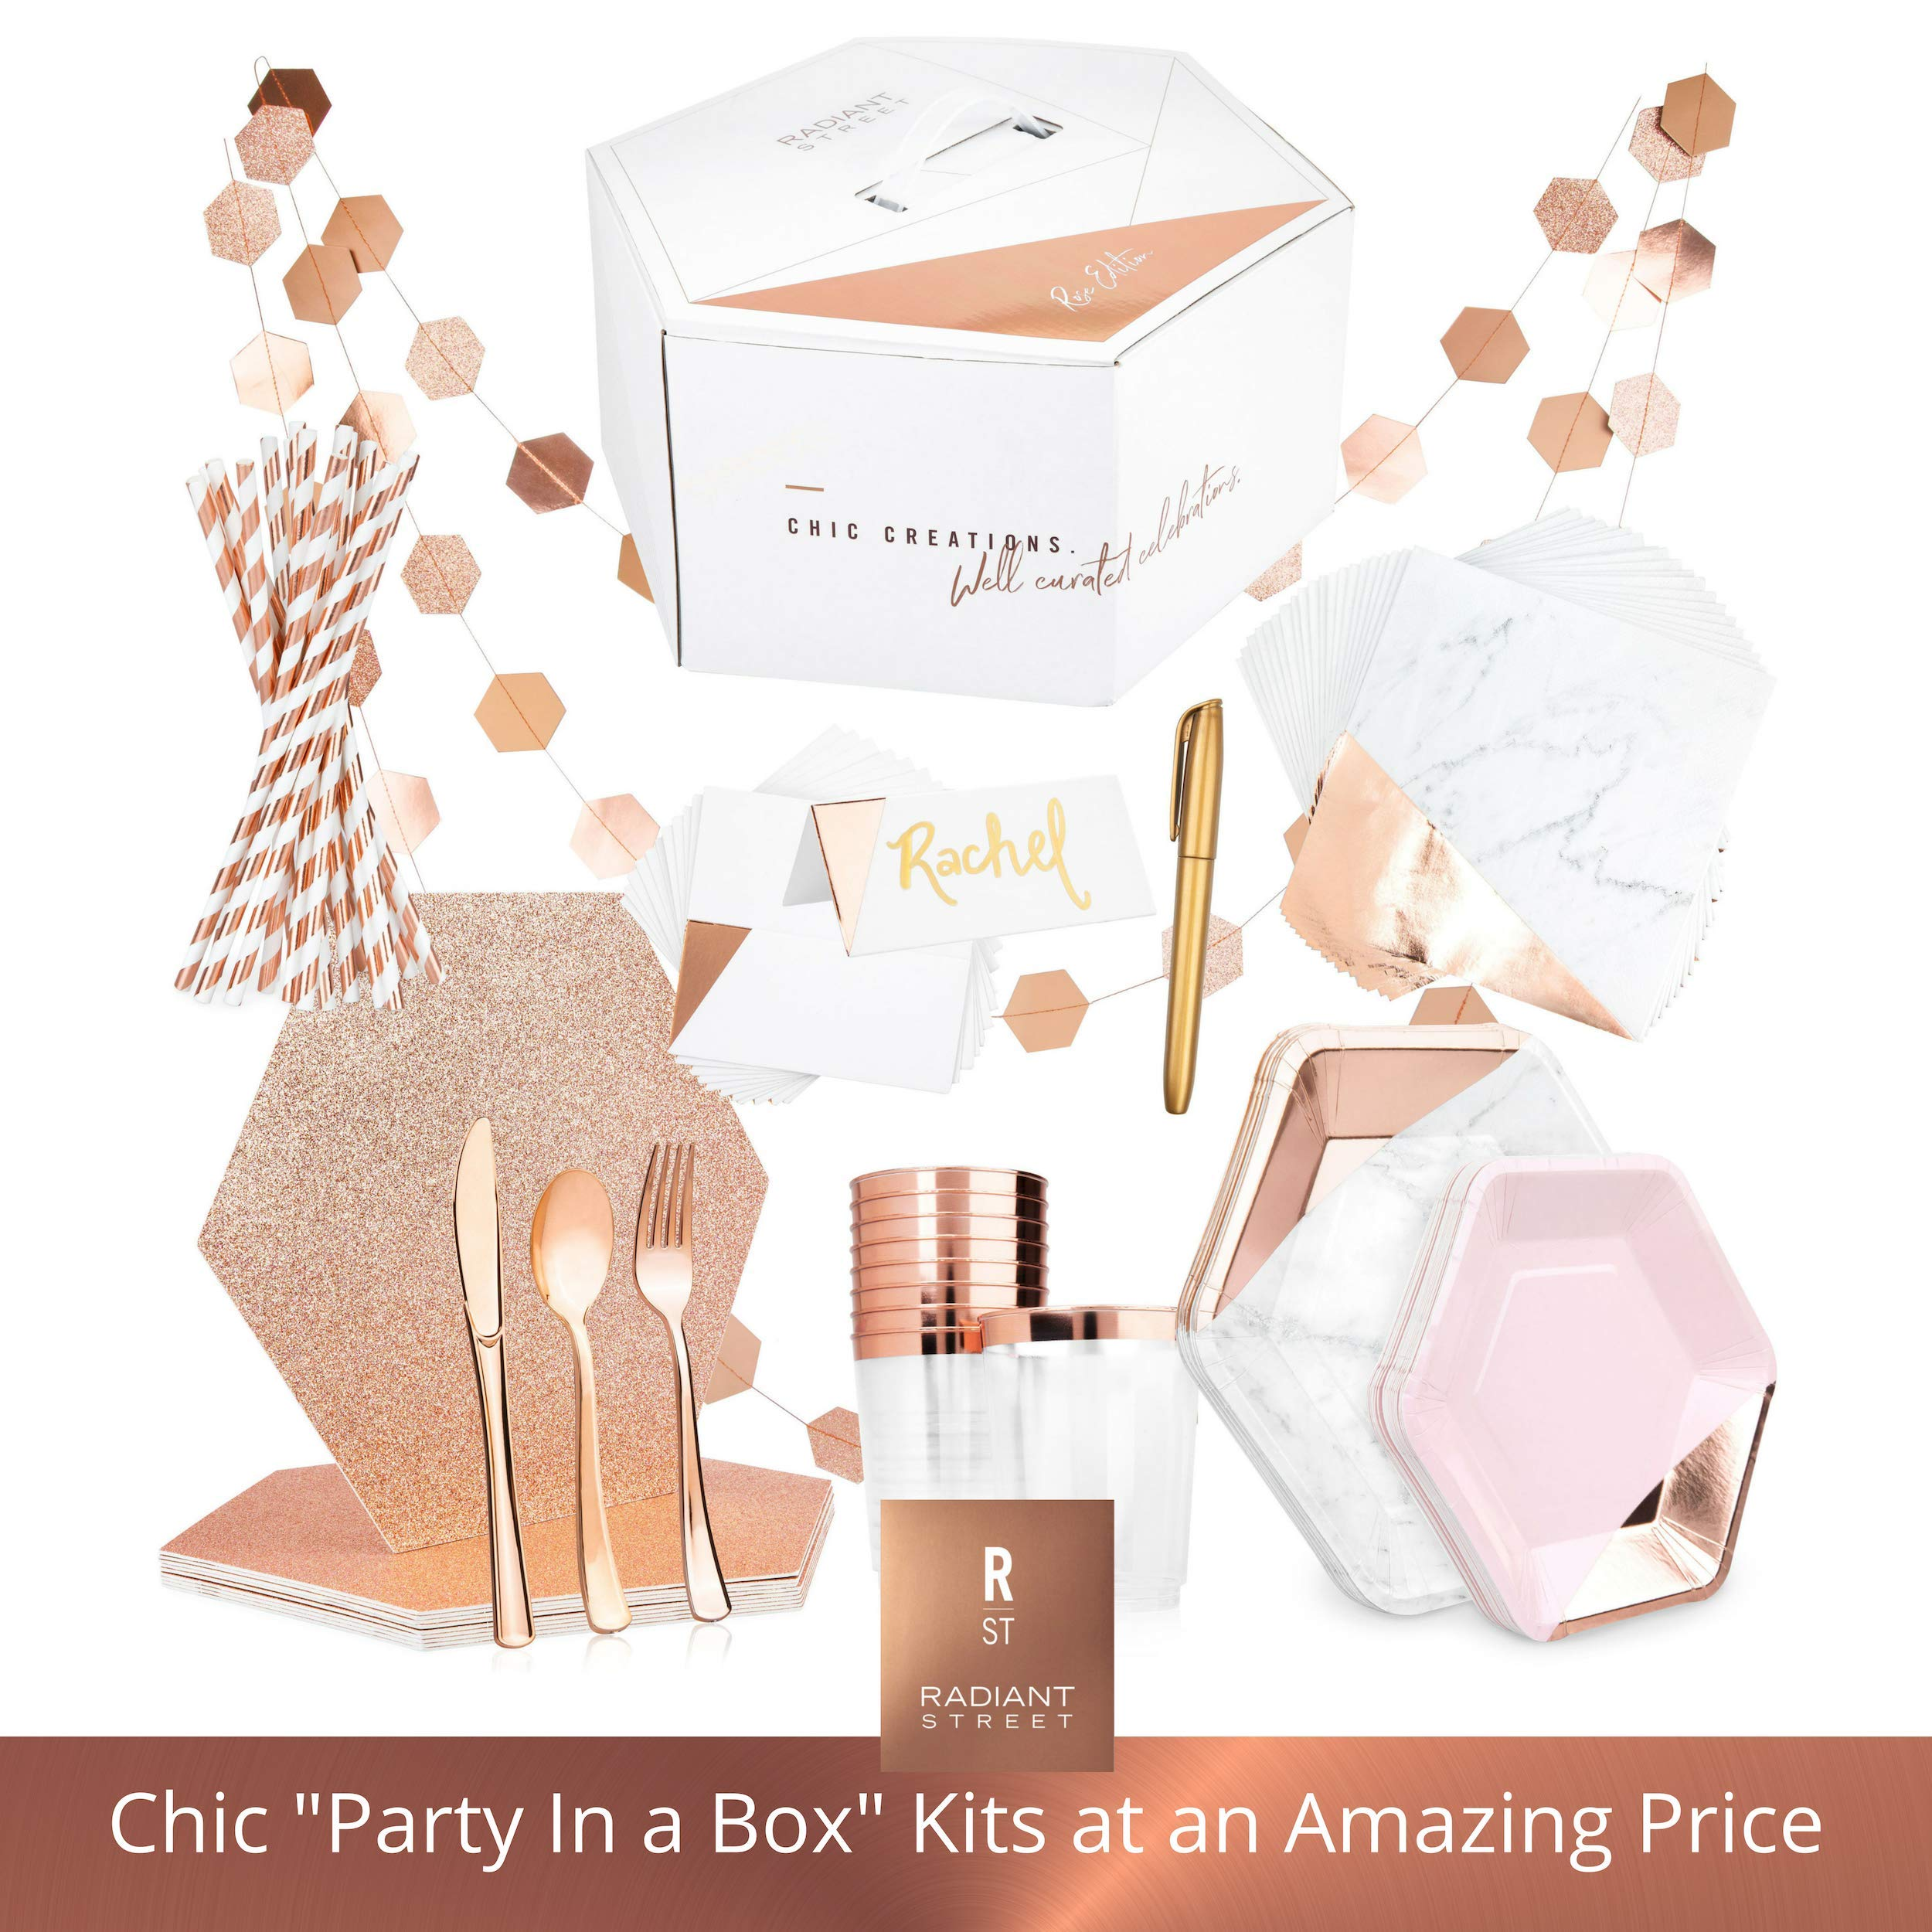 Rose Gold Party Supplies - One of a Kind Party in a Box for 10 Guests - Chic 122 Piece Kit Includes Placemats, Paper Plates, Straws, Napkins, Plastic Cups, Silverware, Name Cards, Decorations & More